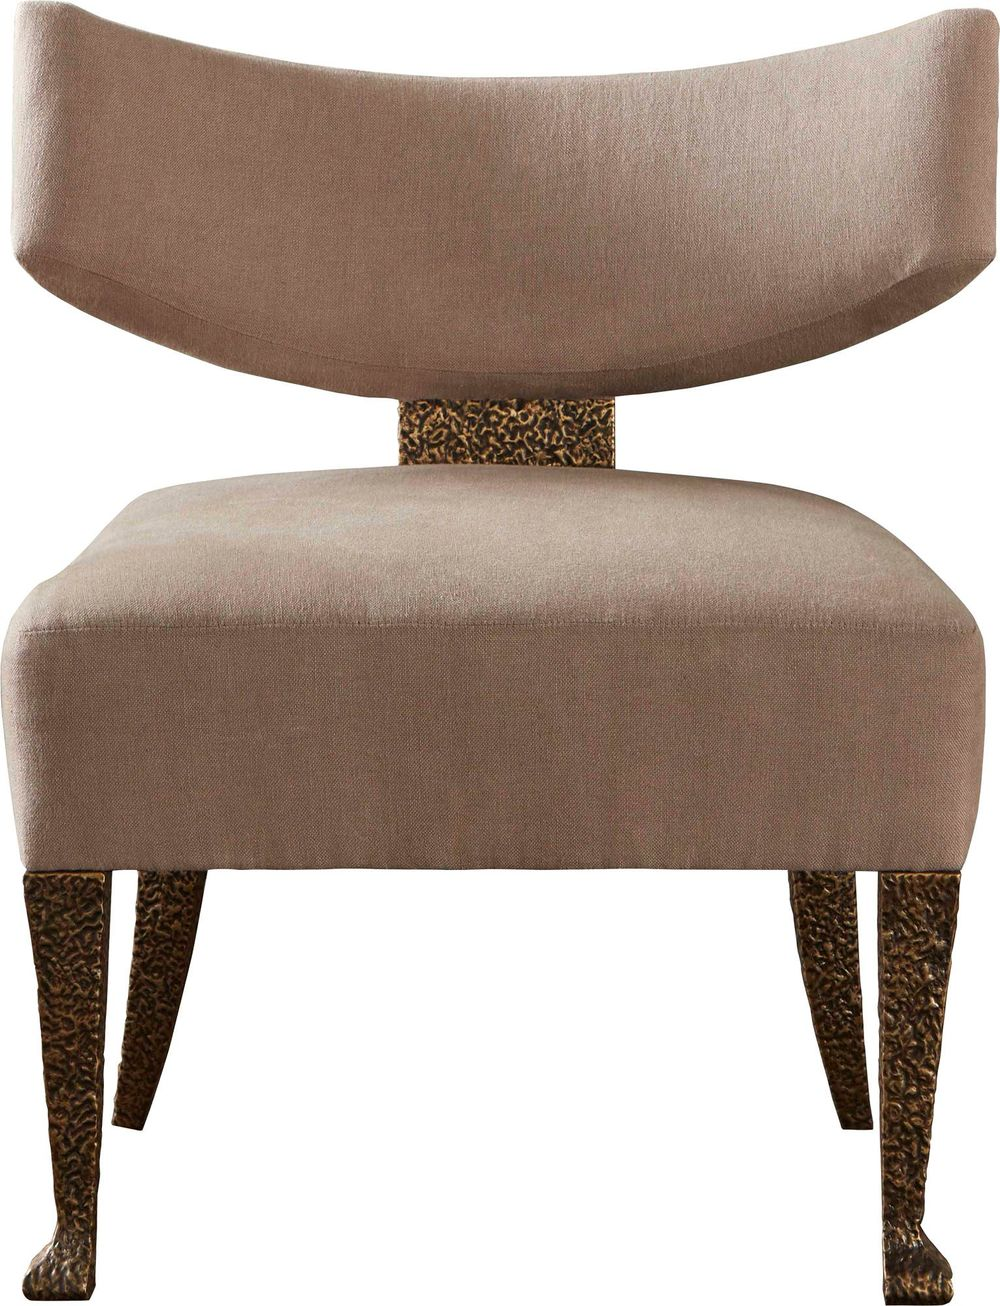 Baker Furniture - Athea Occasional Chair